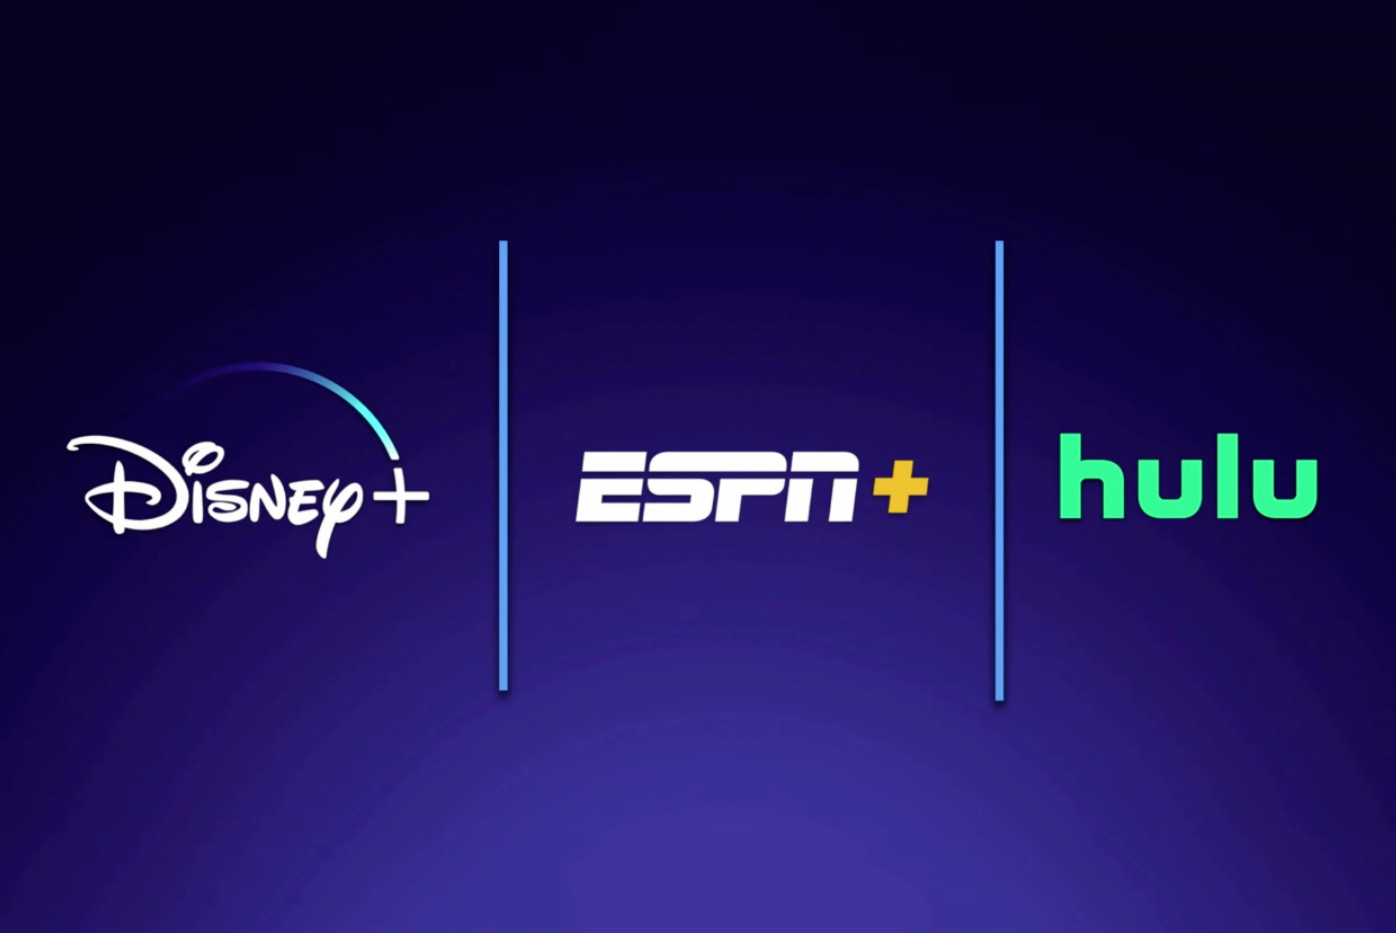 Disney S New Bundle Will Offer Ad Free Hulu Disney Plus And Espn Plus For 18 99 The Verge